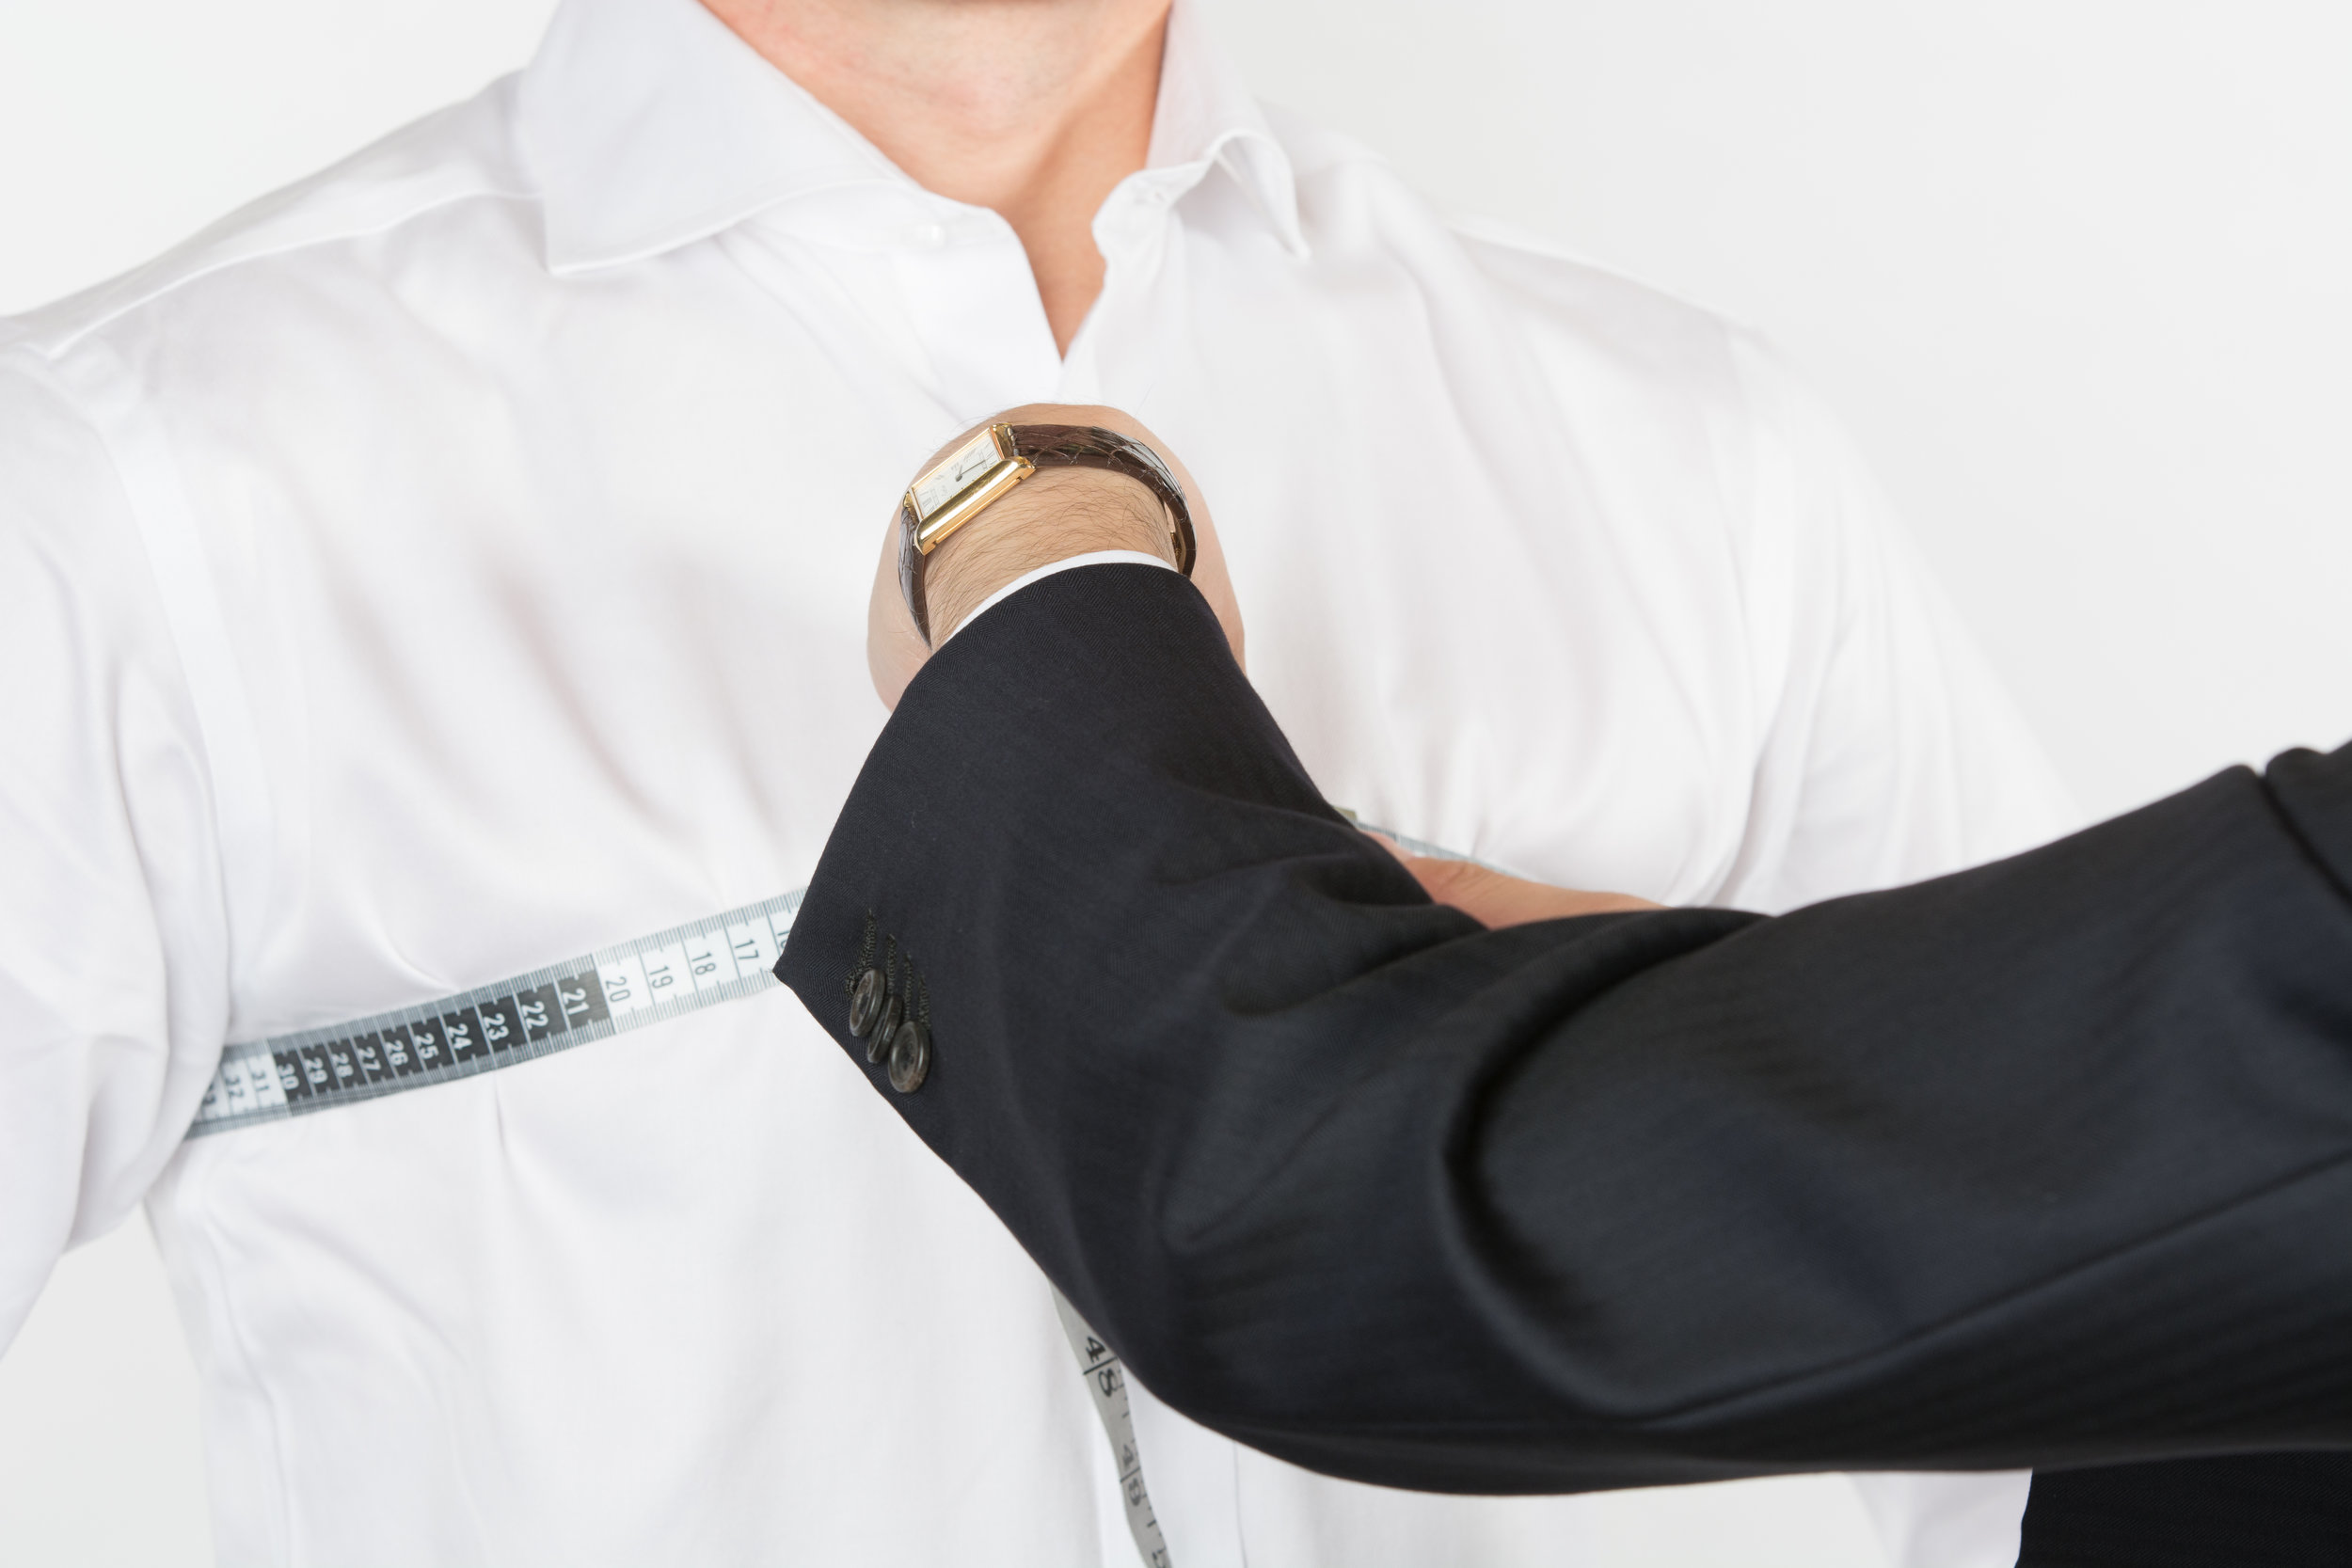 Custom shirt fittings are also available to compliment your new suit